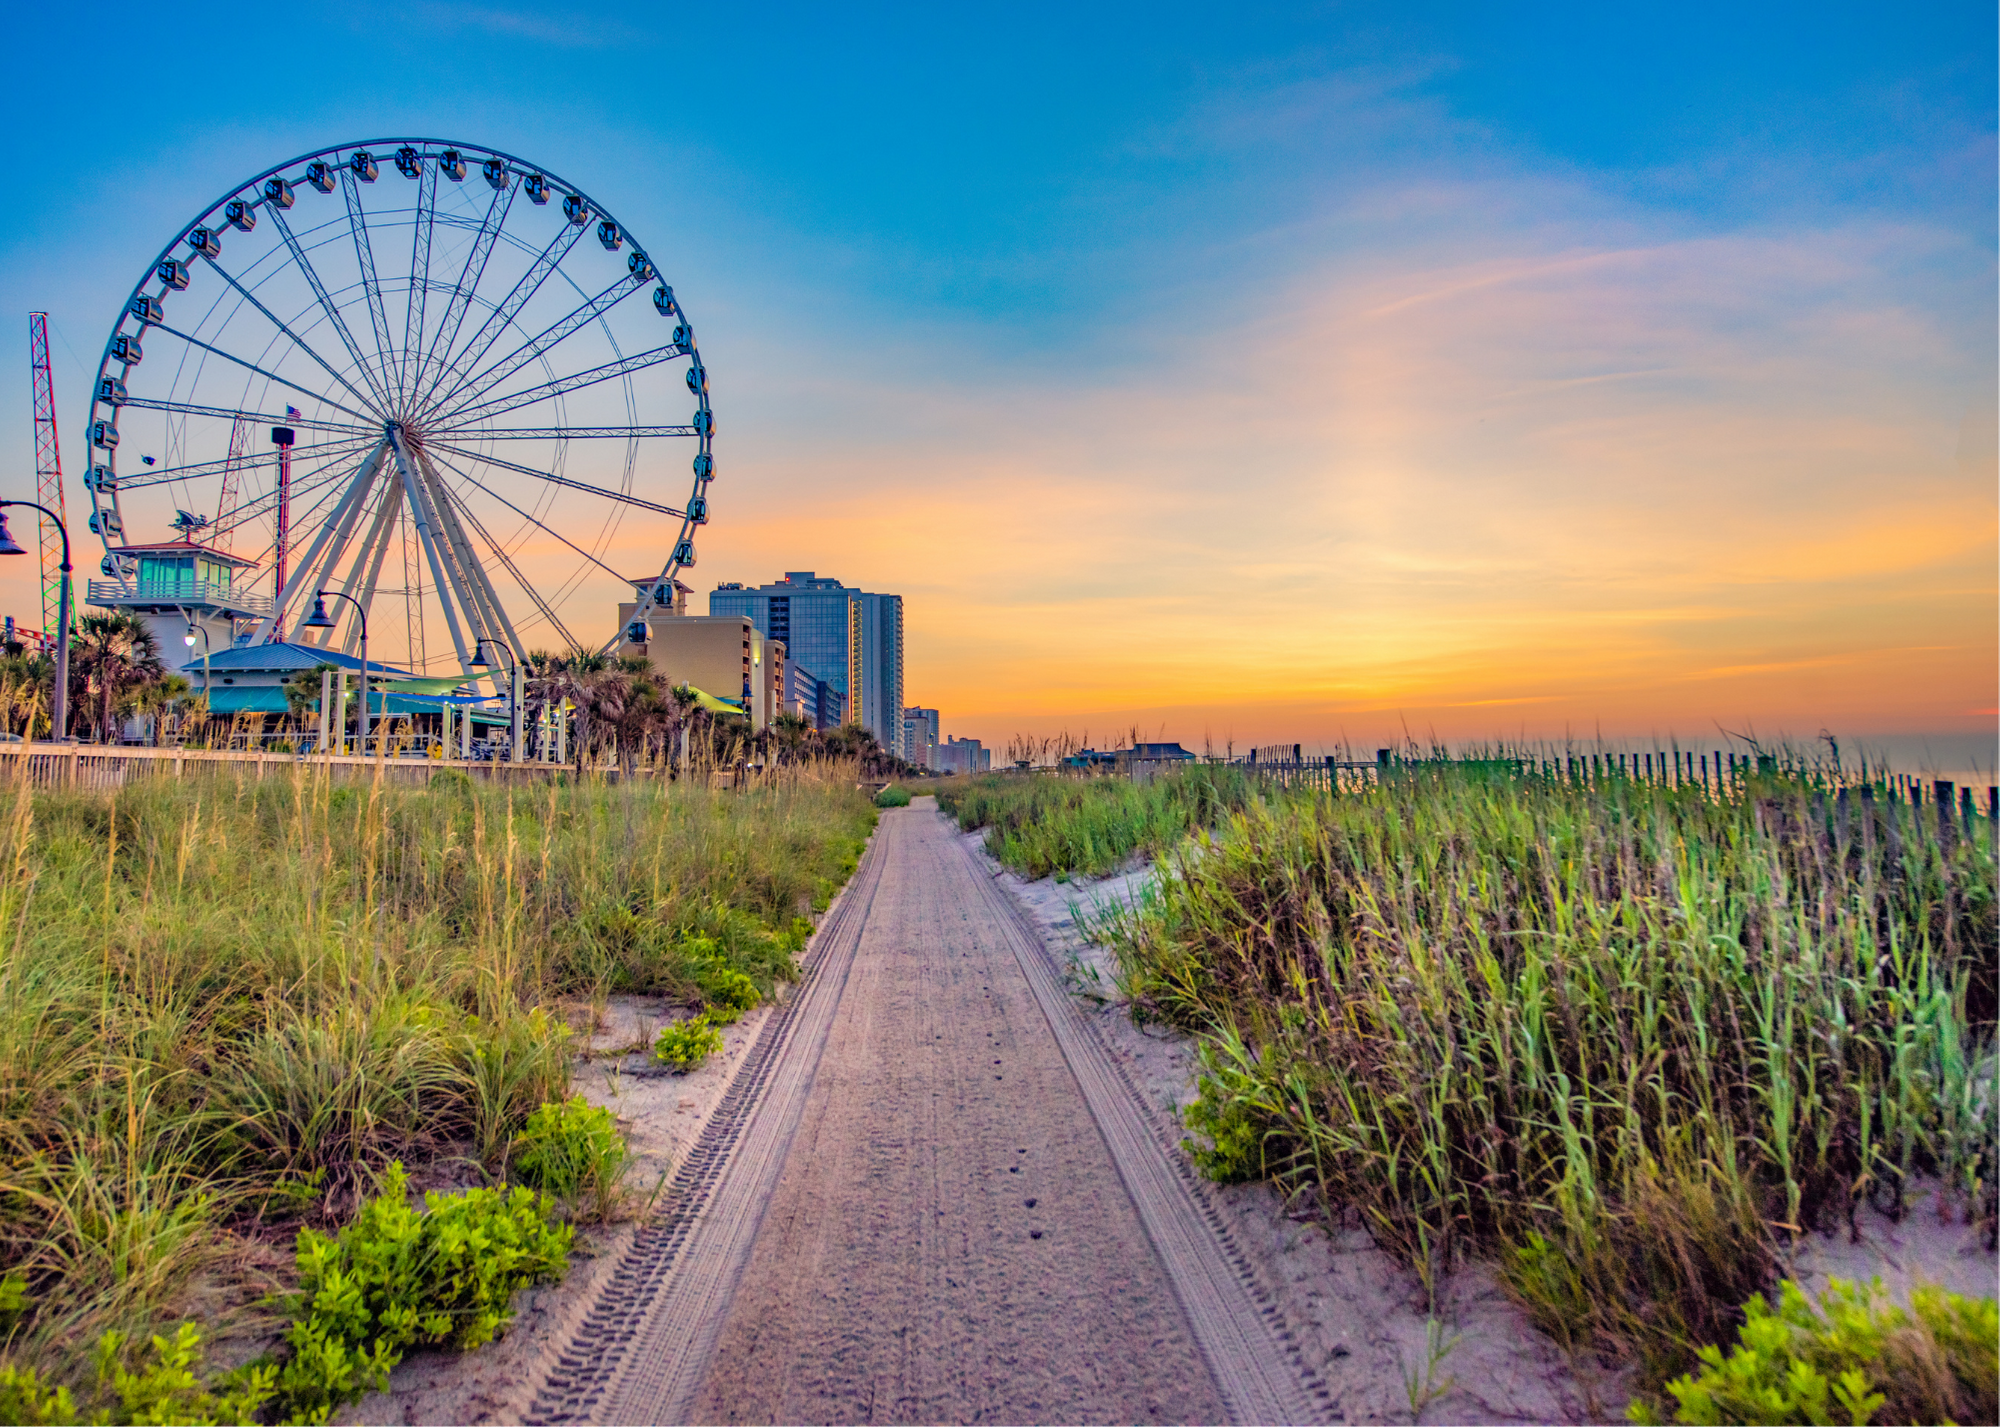 Experience the Myrtle Beach SkyWheel this Summer